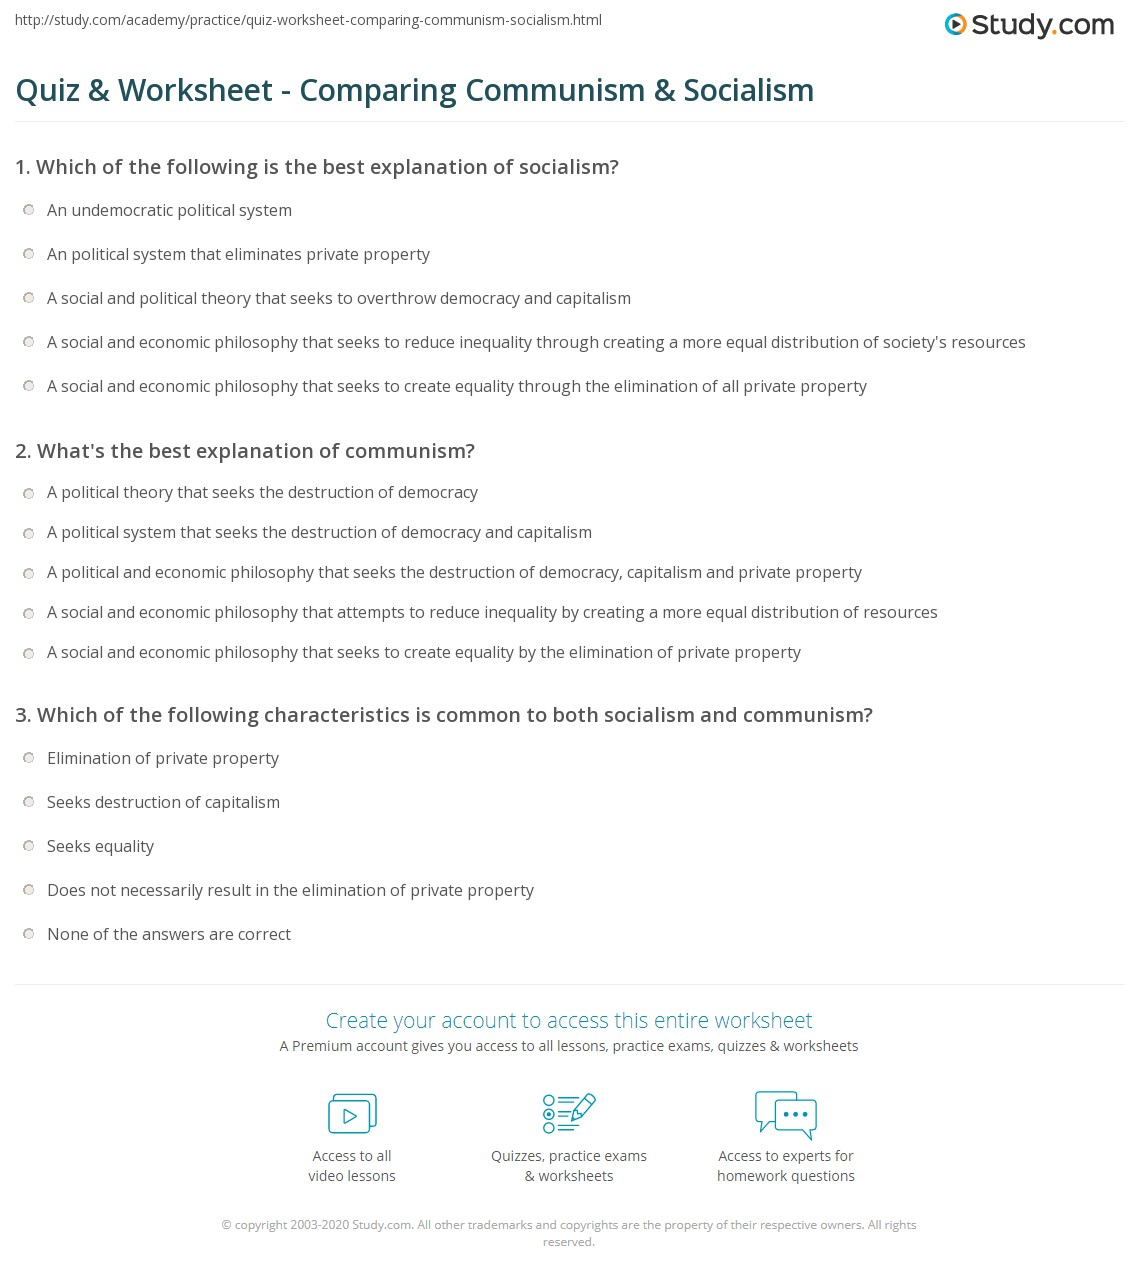 quiz worksheet comparing communism socialism com what s the best explanation of communism